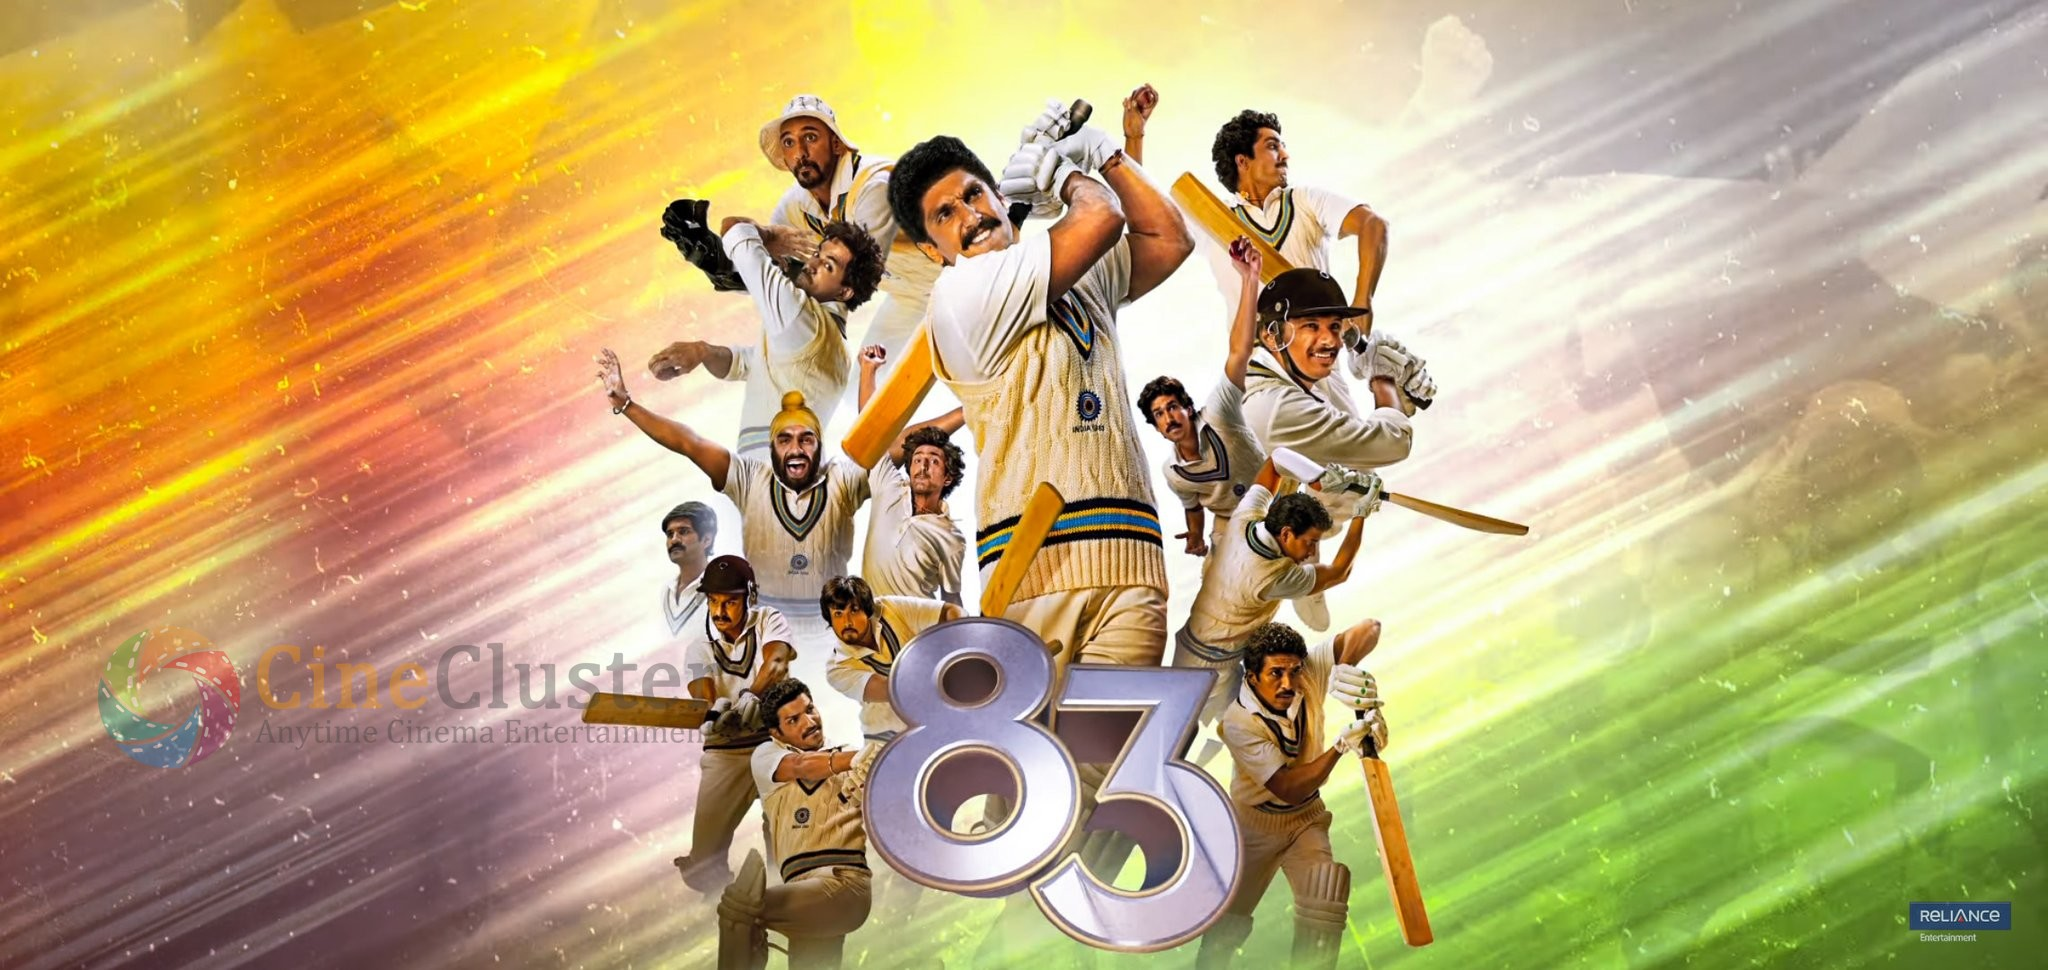 83 First Look Posters